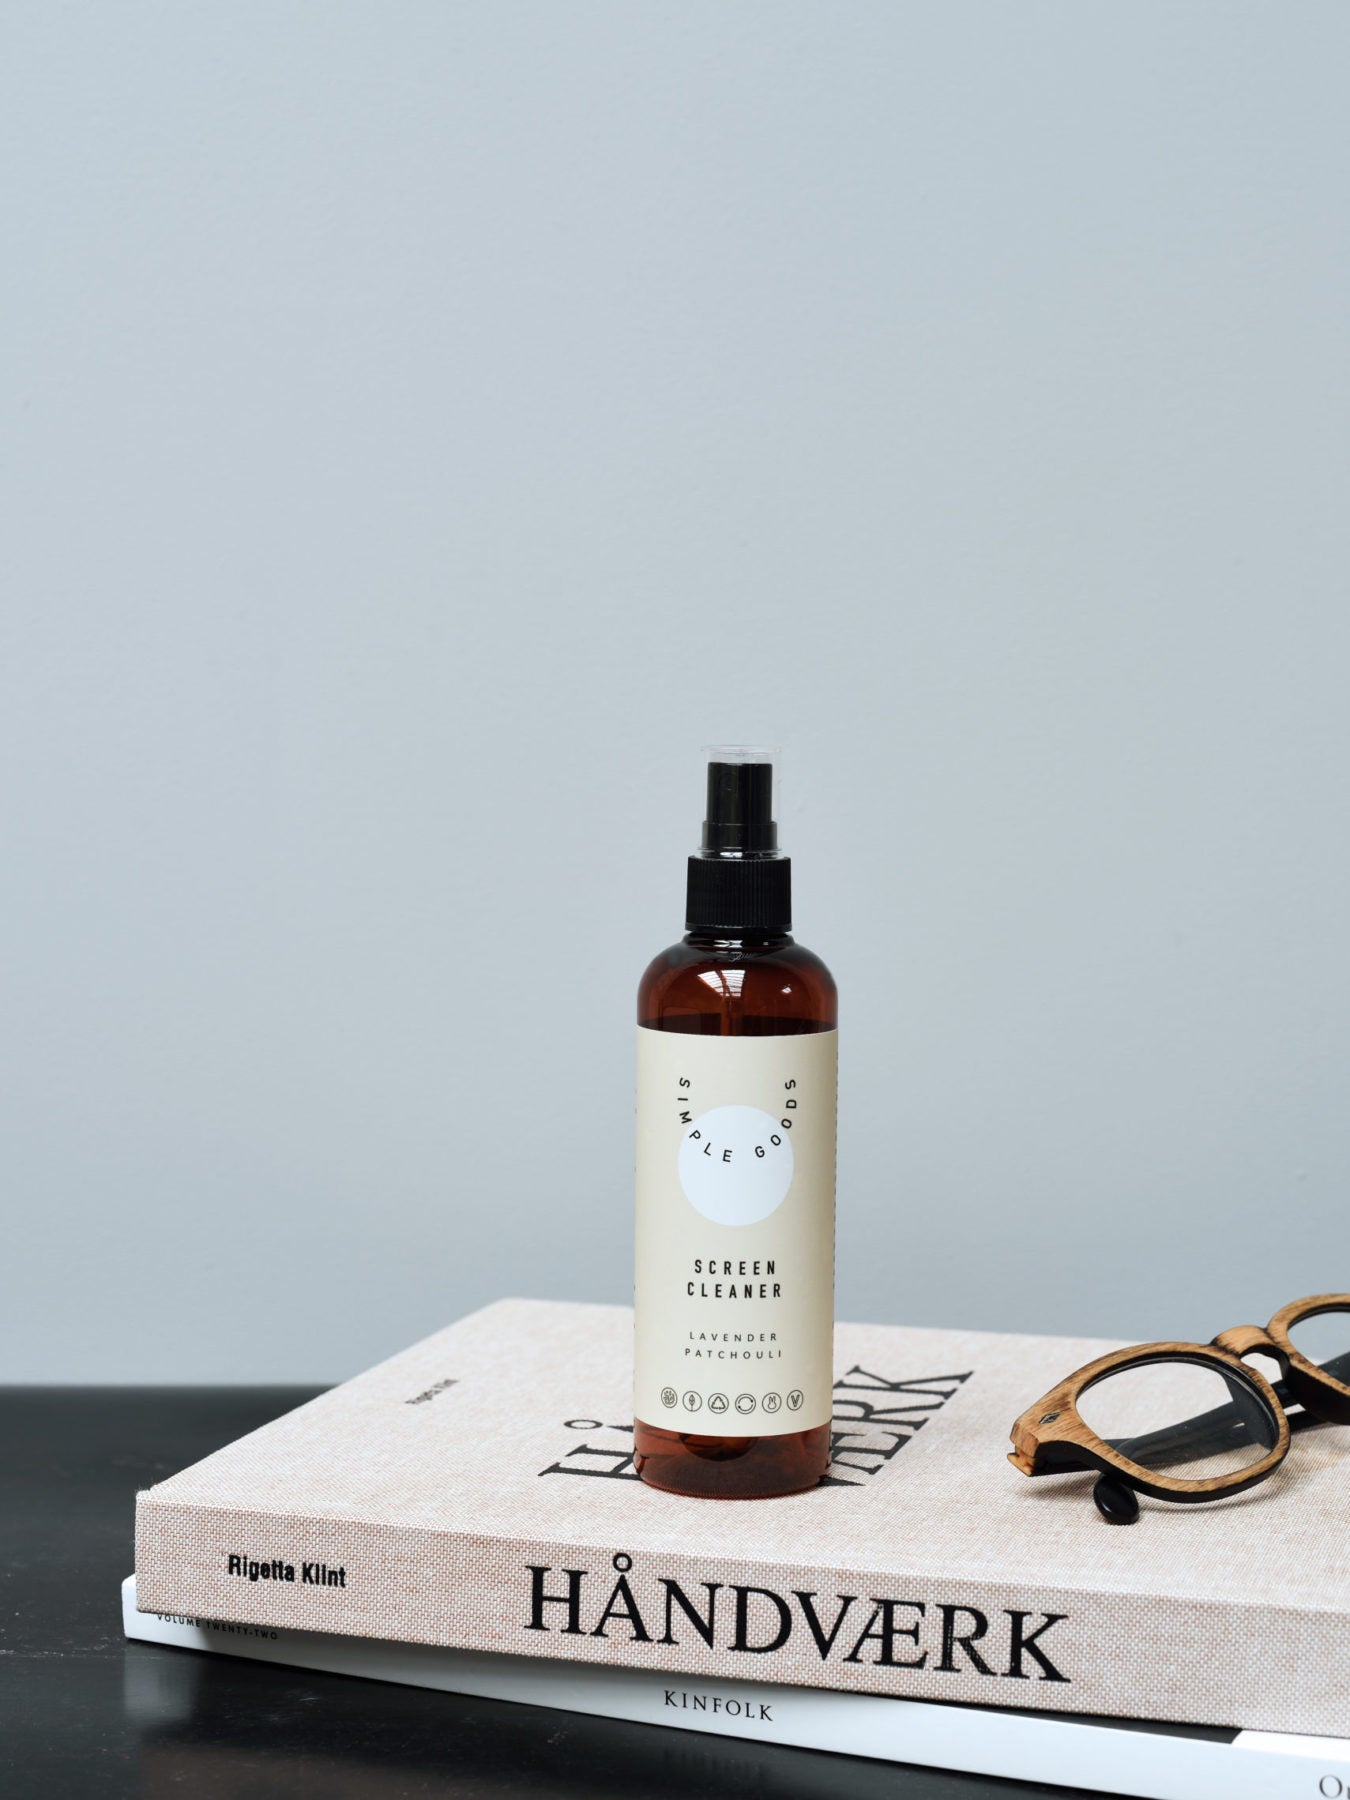 Simple Goods, Skærm Rens - Lavendel, Patchouli, 150 ml